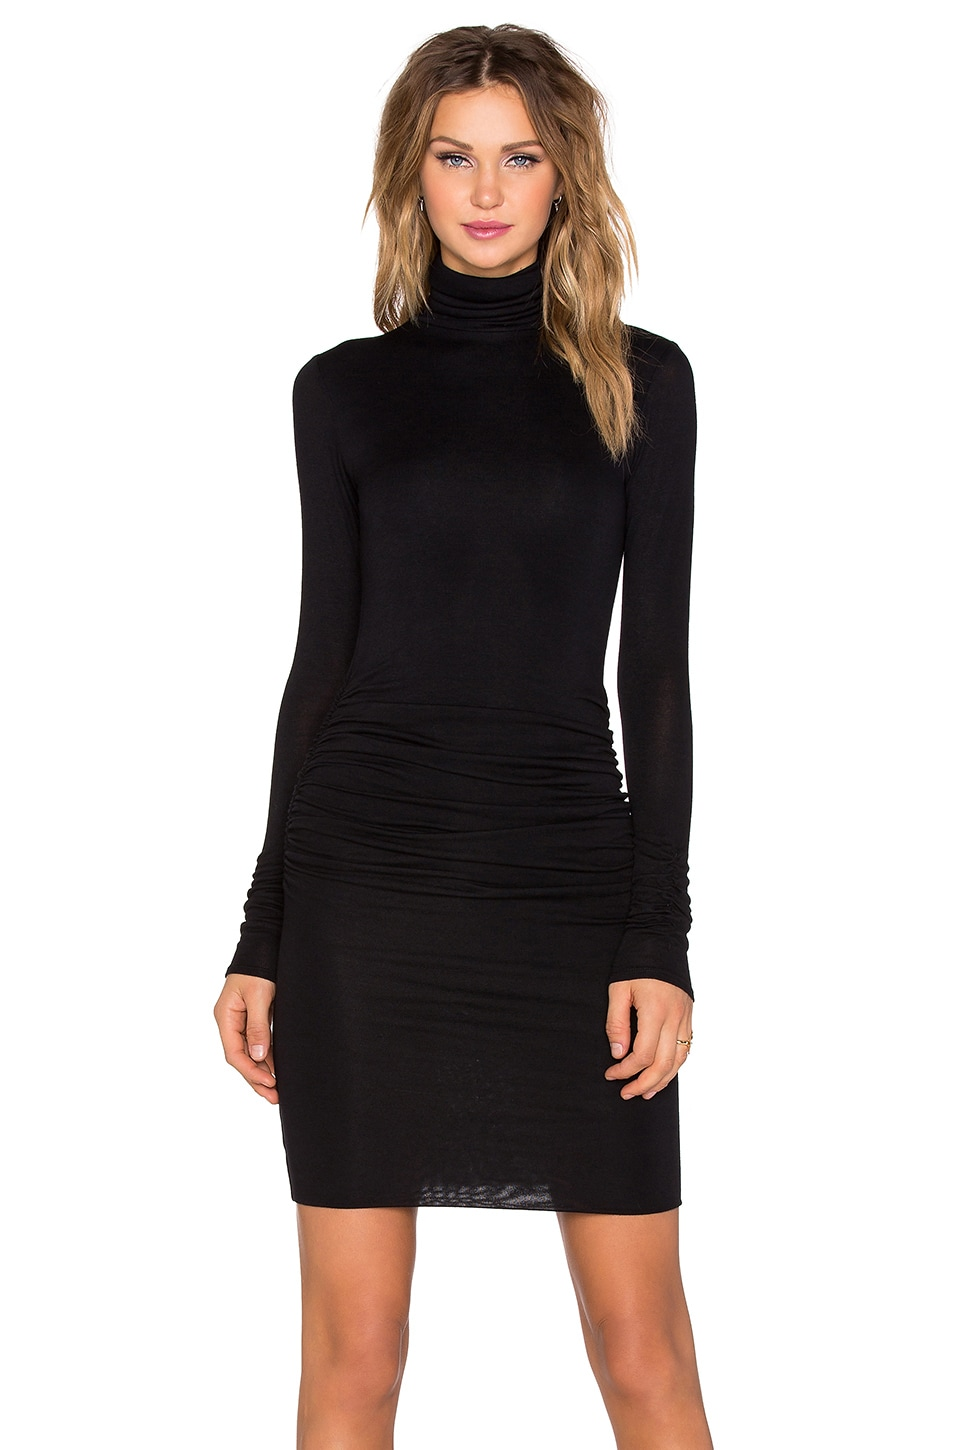 Black turtleneck dress - Dress Yp